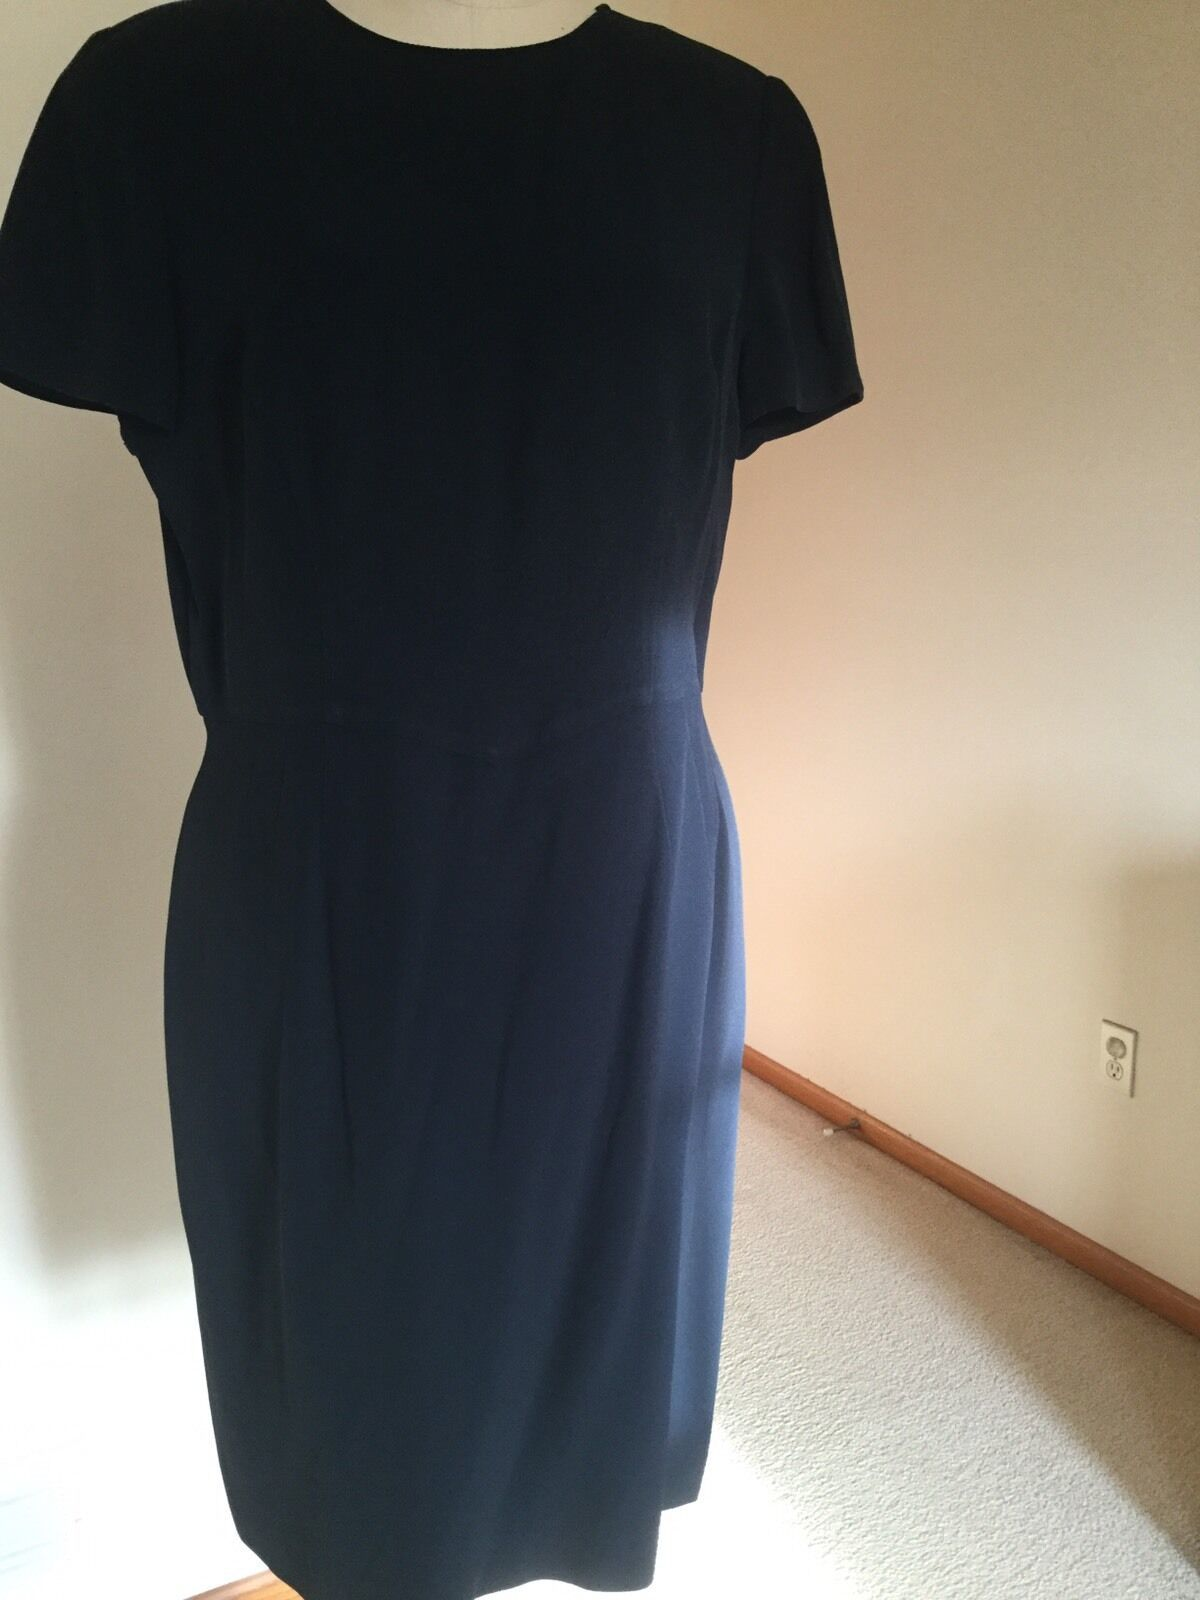 Armani dress,US Size 12,Navy,Short sleeves, image 2